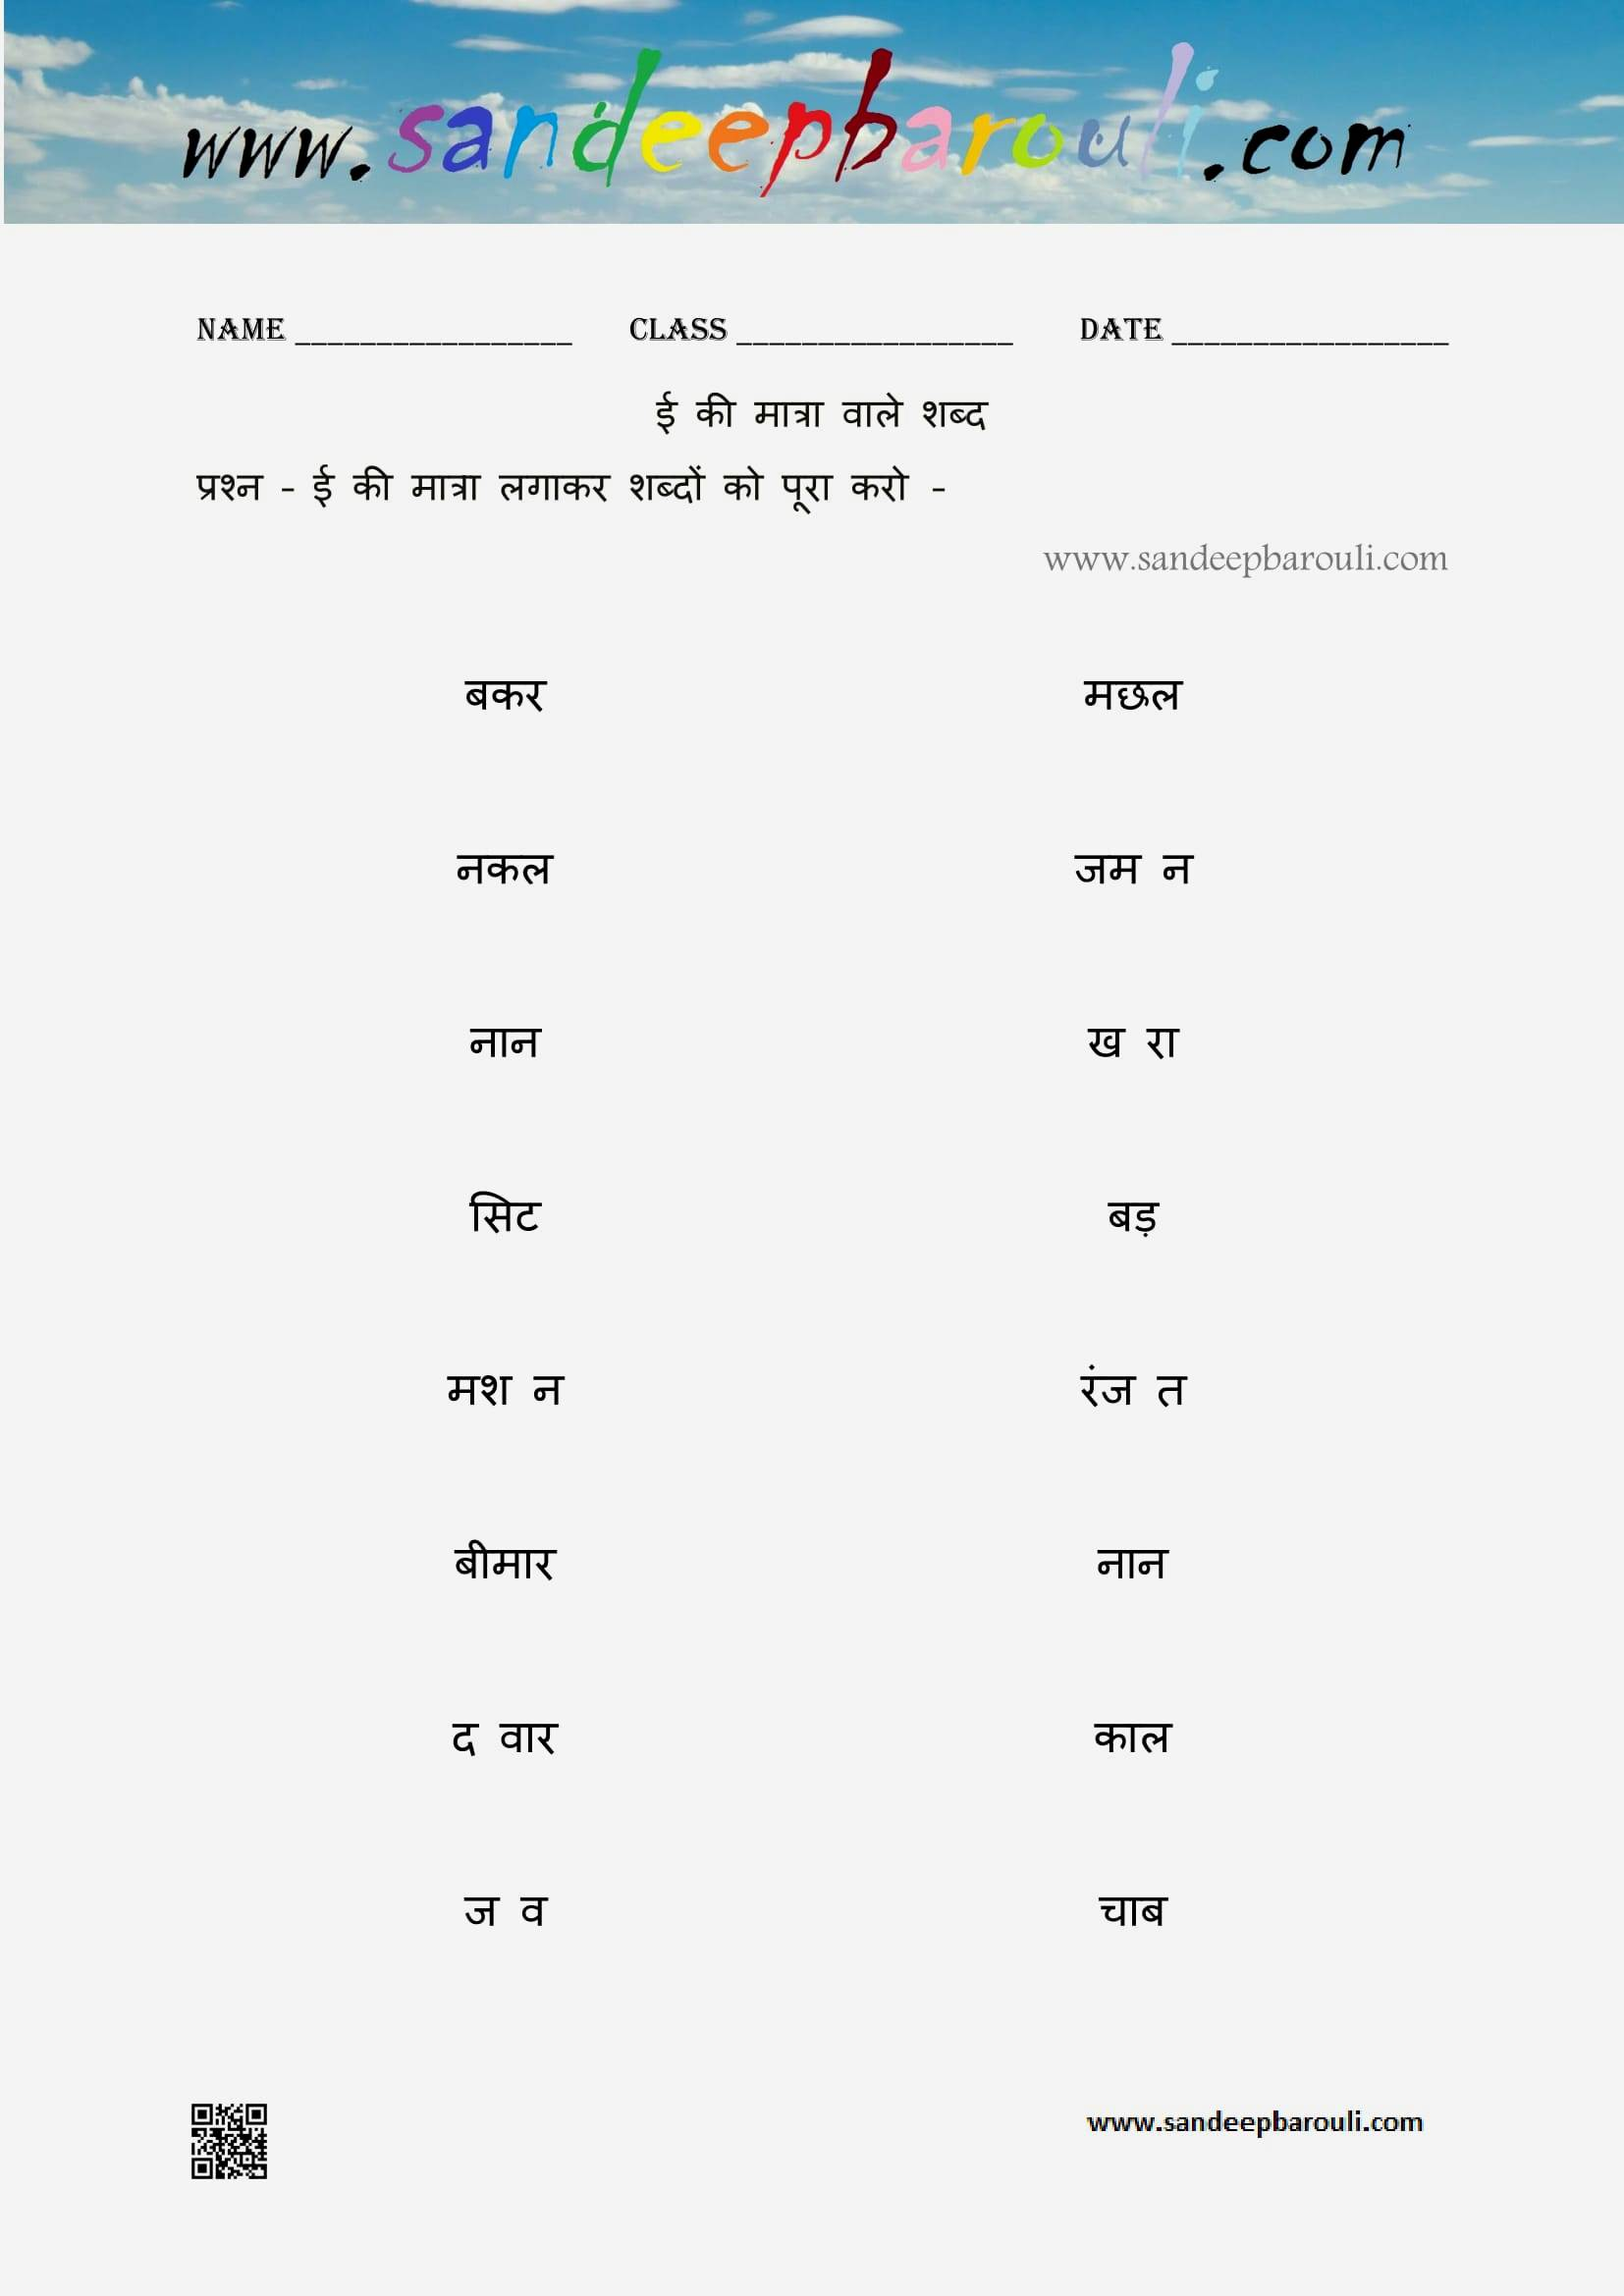 Worksheet 3 Sandeepbarouli